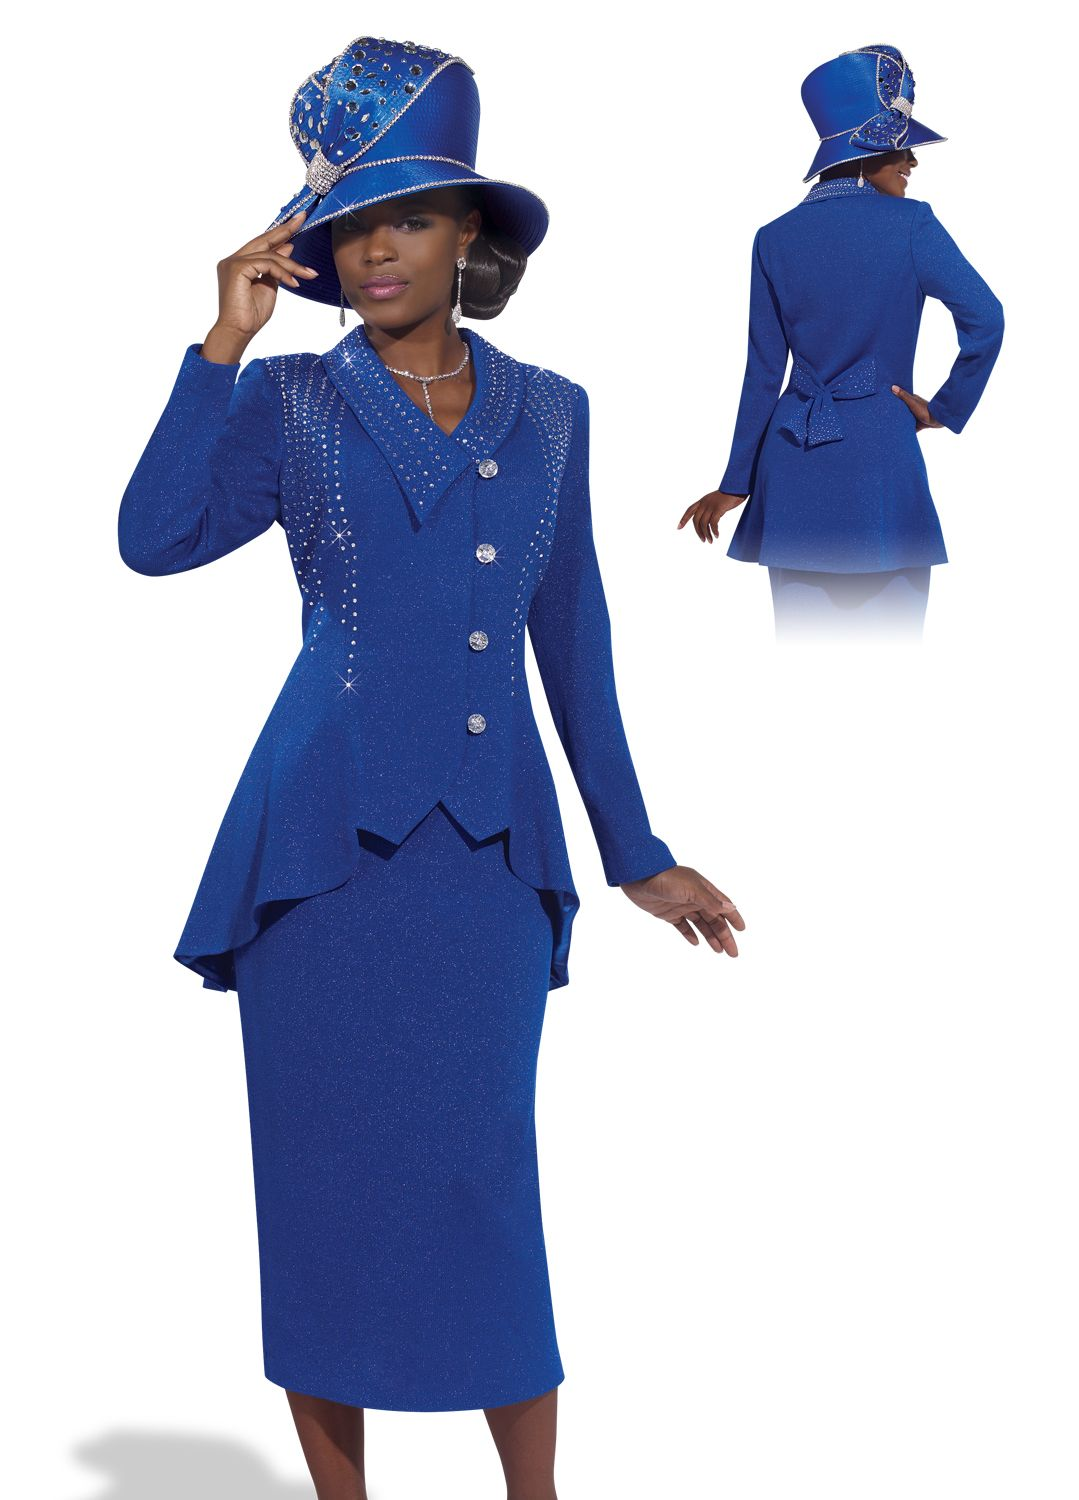 Classy Lady In Royal Blue By Donna Vinci Knits 2987 349 00 Spring